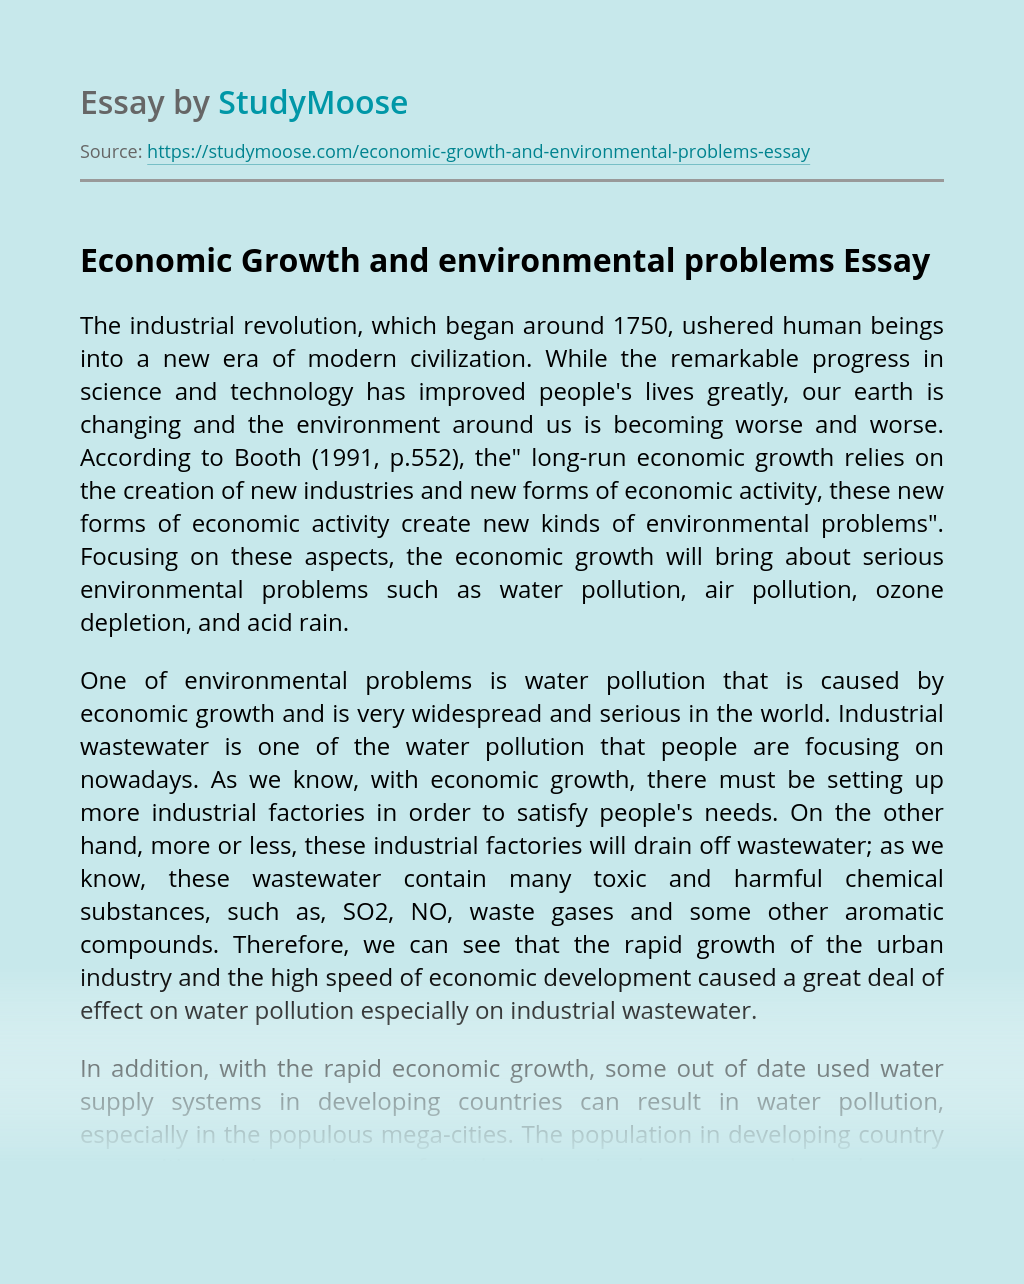 Economic Growth and environmental problems